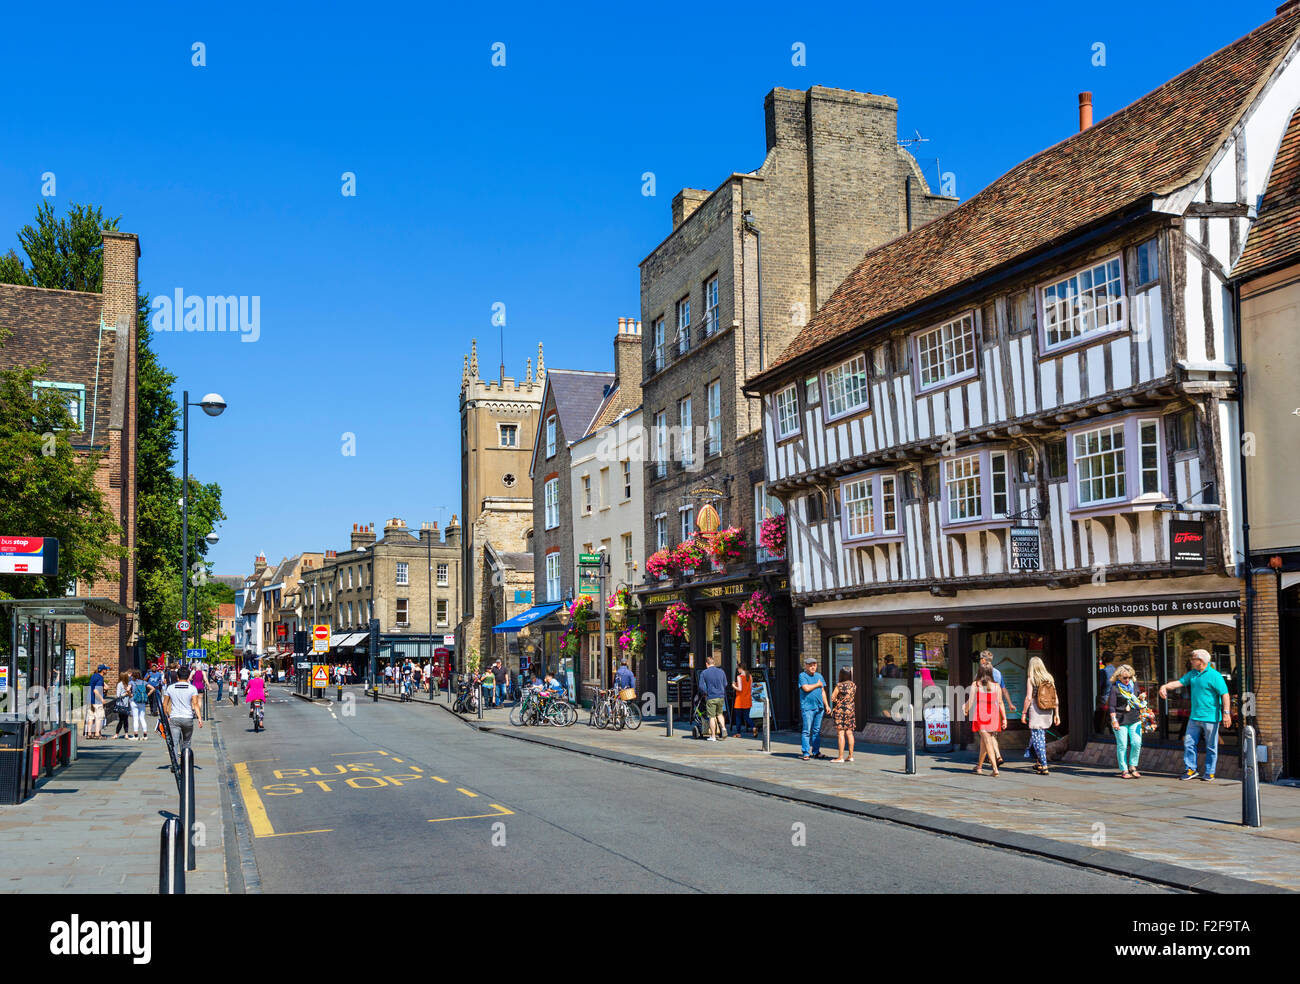 Bridge Street in the city centre, Cambridge, Cambridgeshire, England, UK - Stock Image